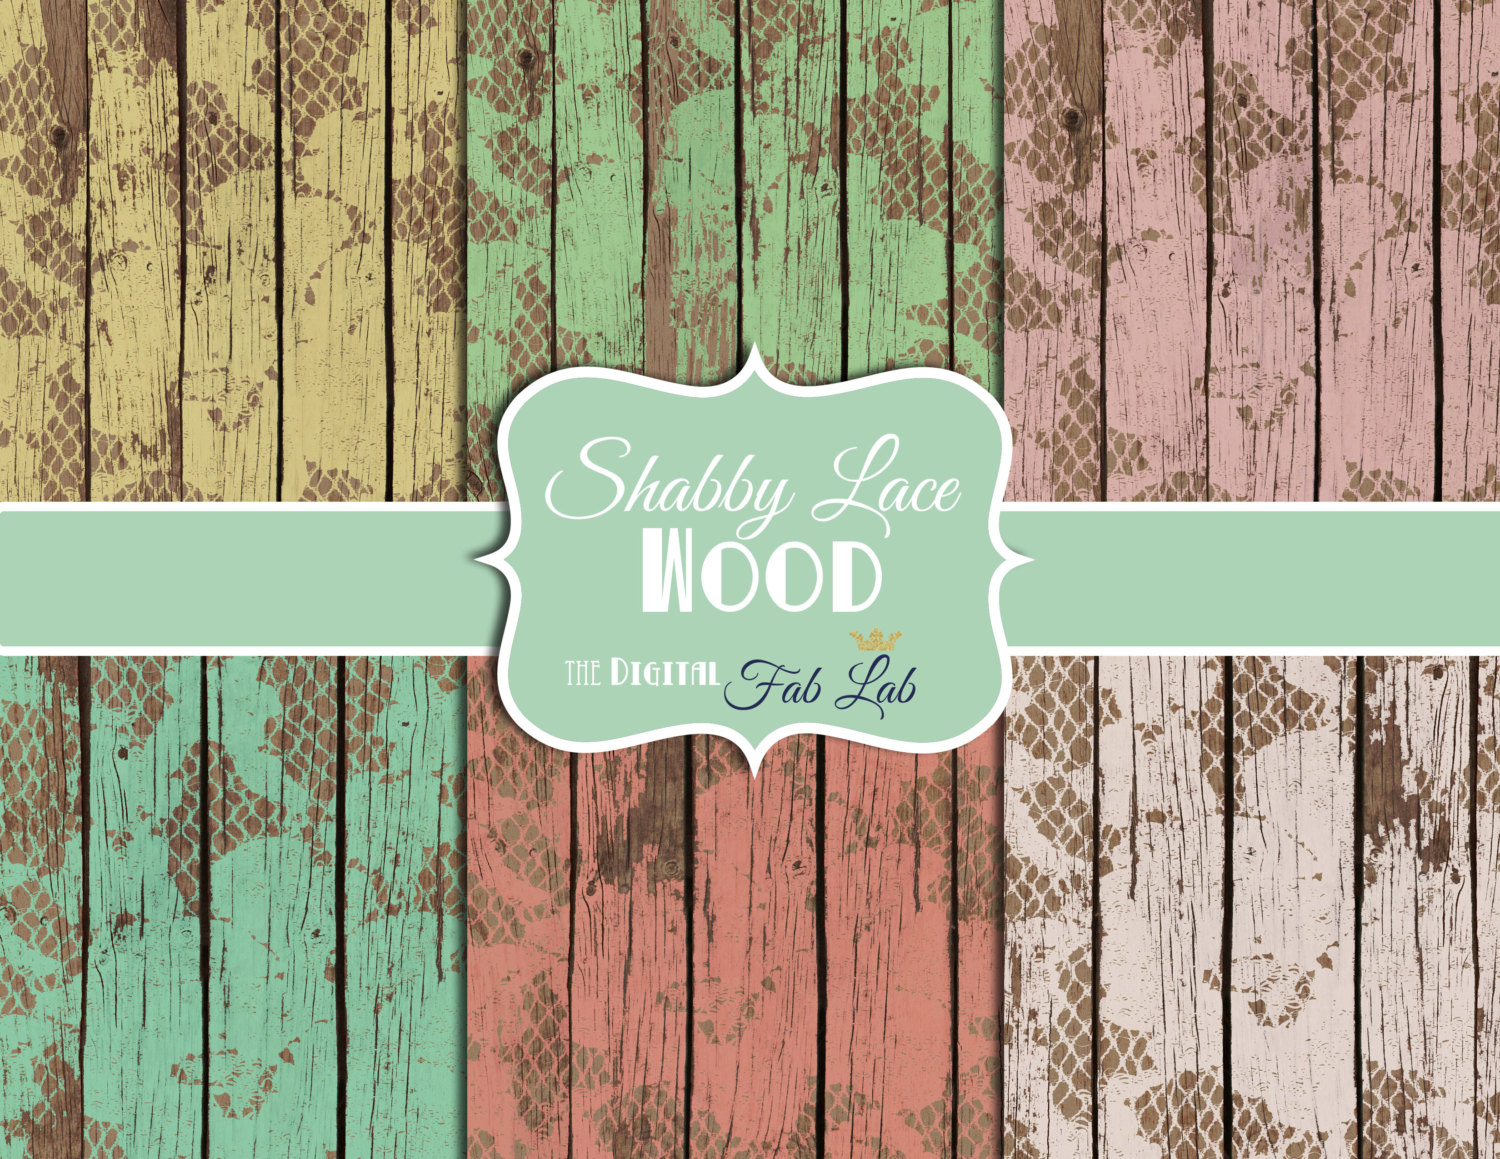 Vintage Rustic Wood Background Clipart